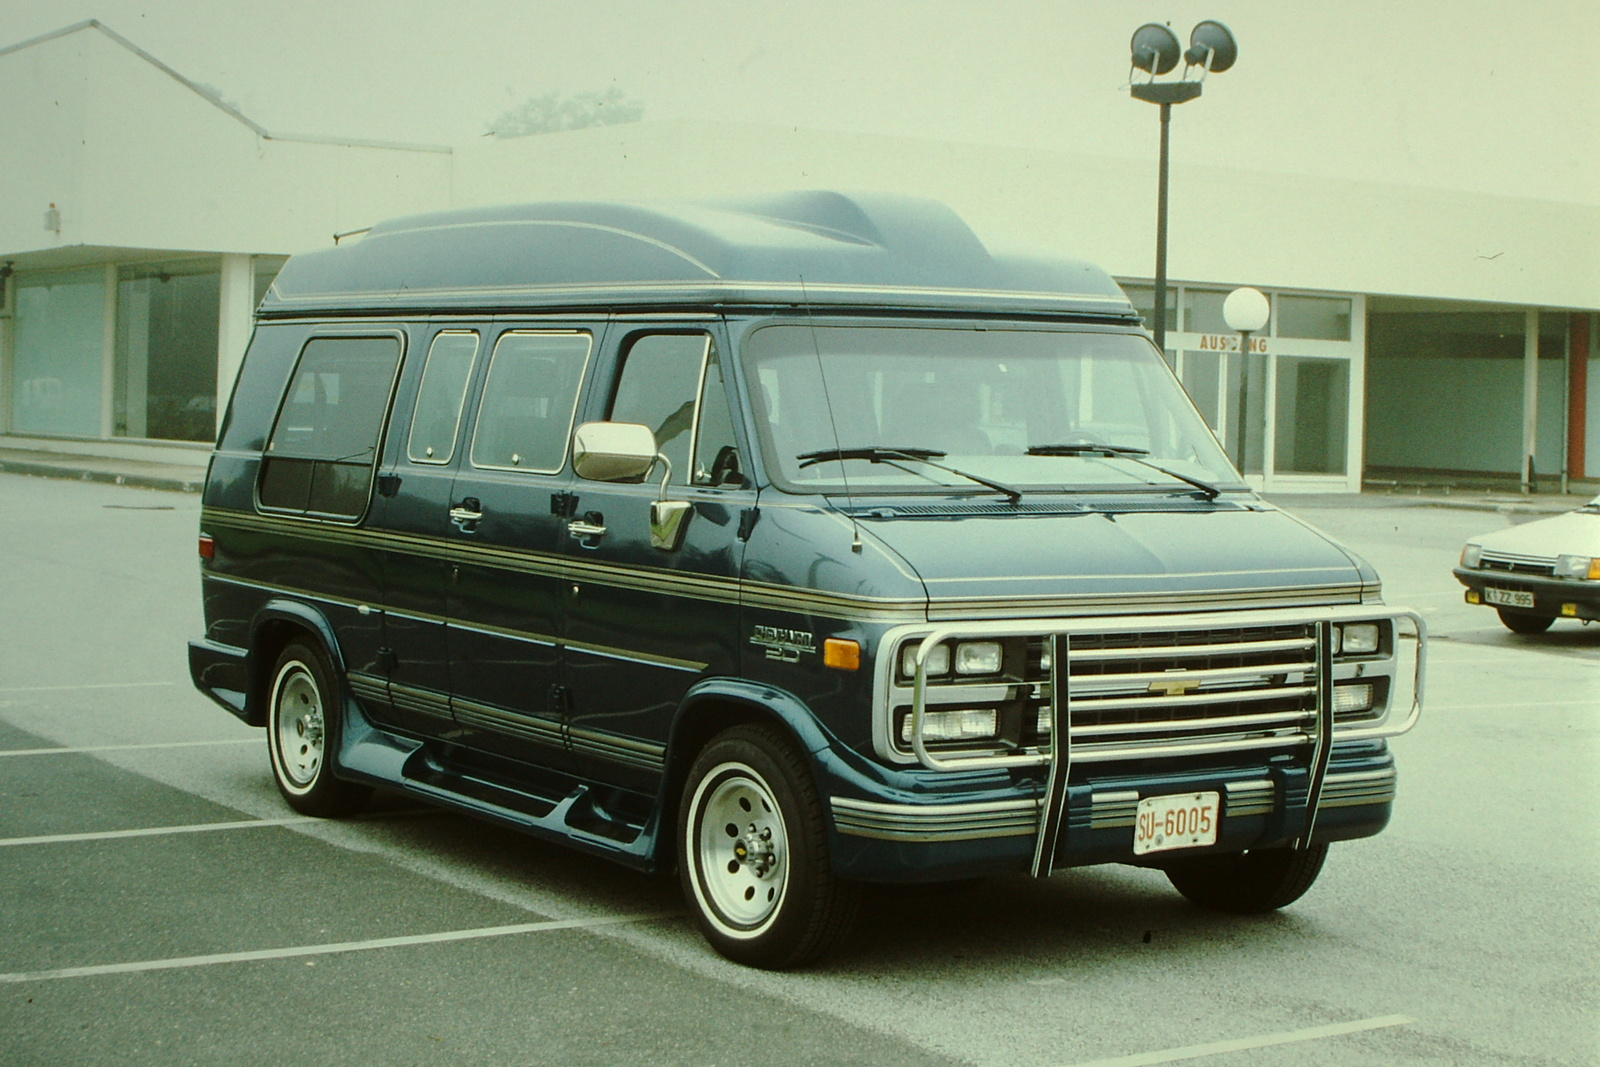 Chevrolet Chevyvan Photo And Video Review Comments 1992 Dodge B250 Wiring Diagram